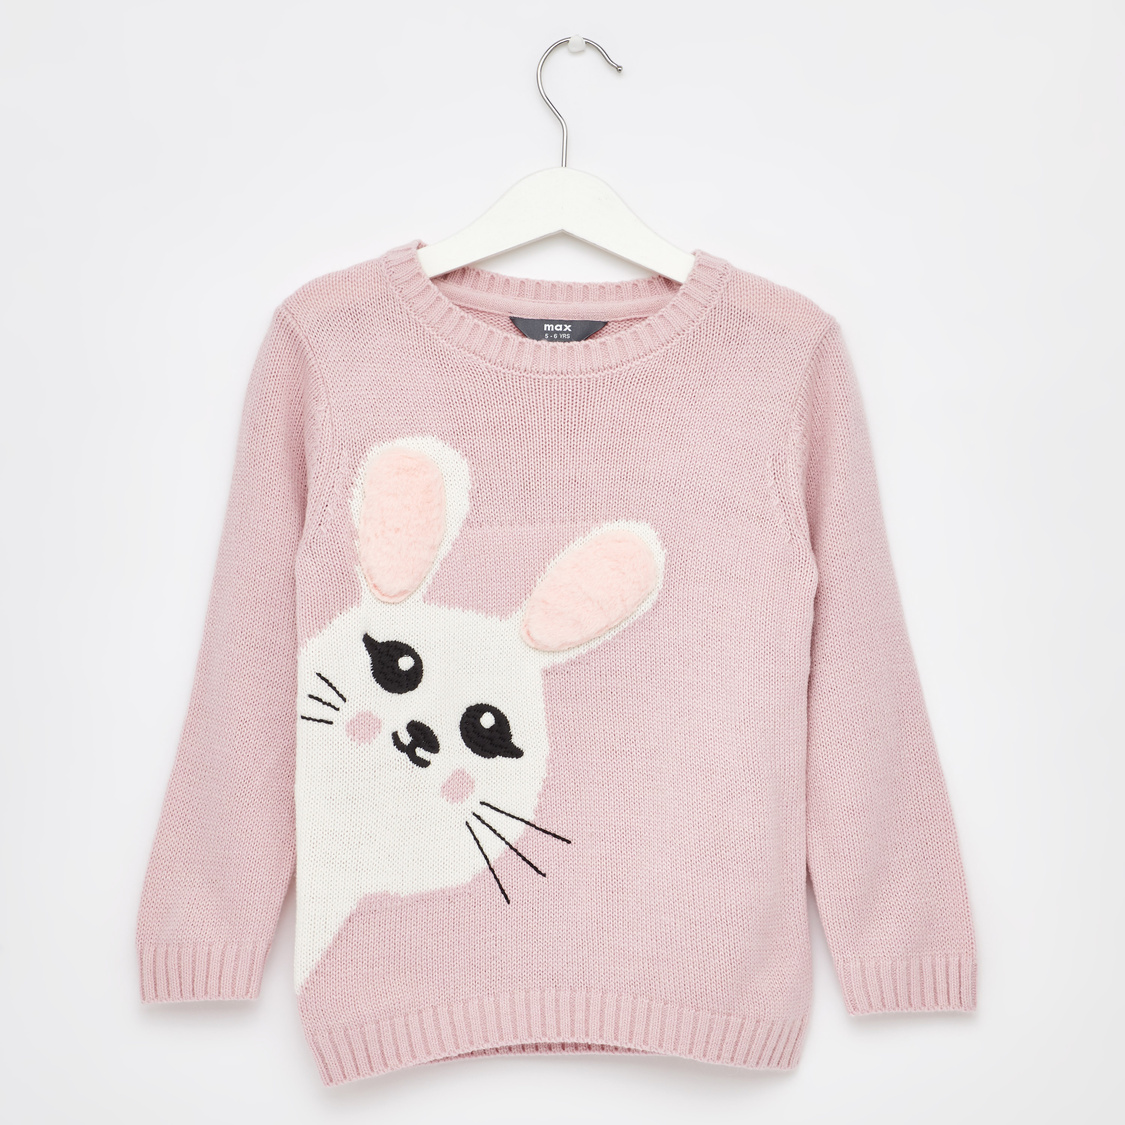 Knitted Round Neck Sweater with Long Sleeves